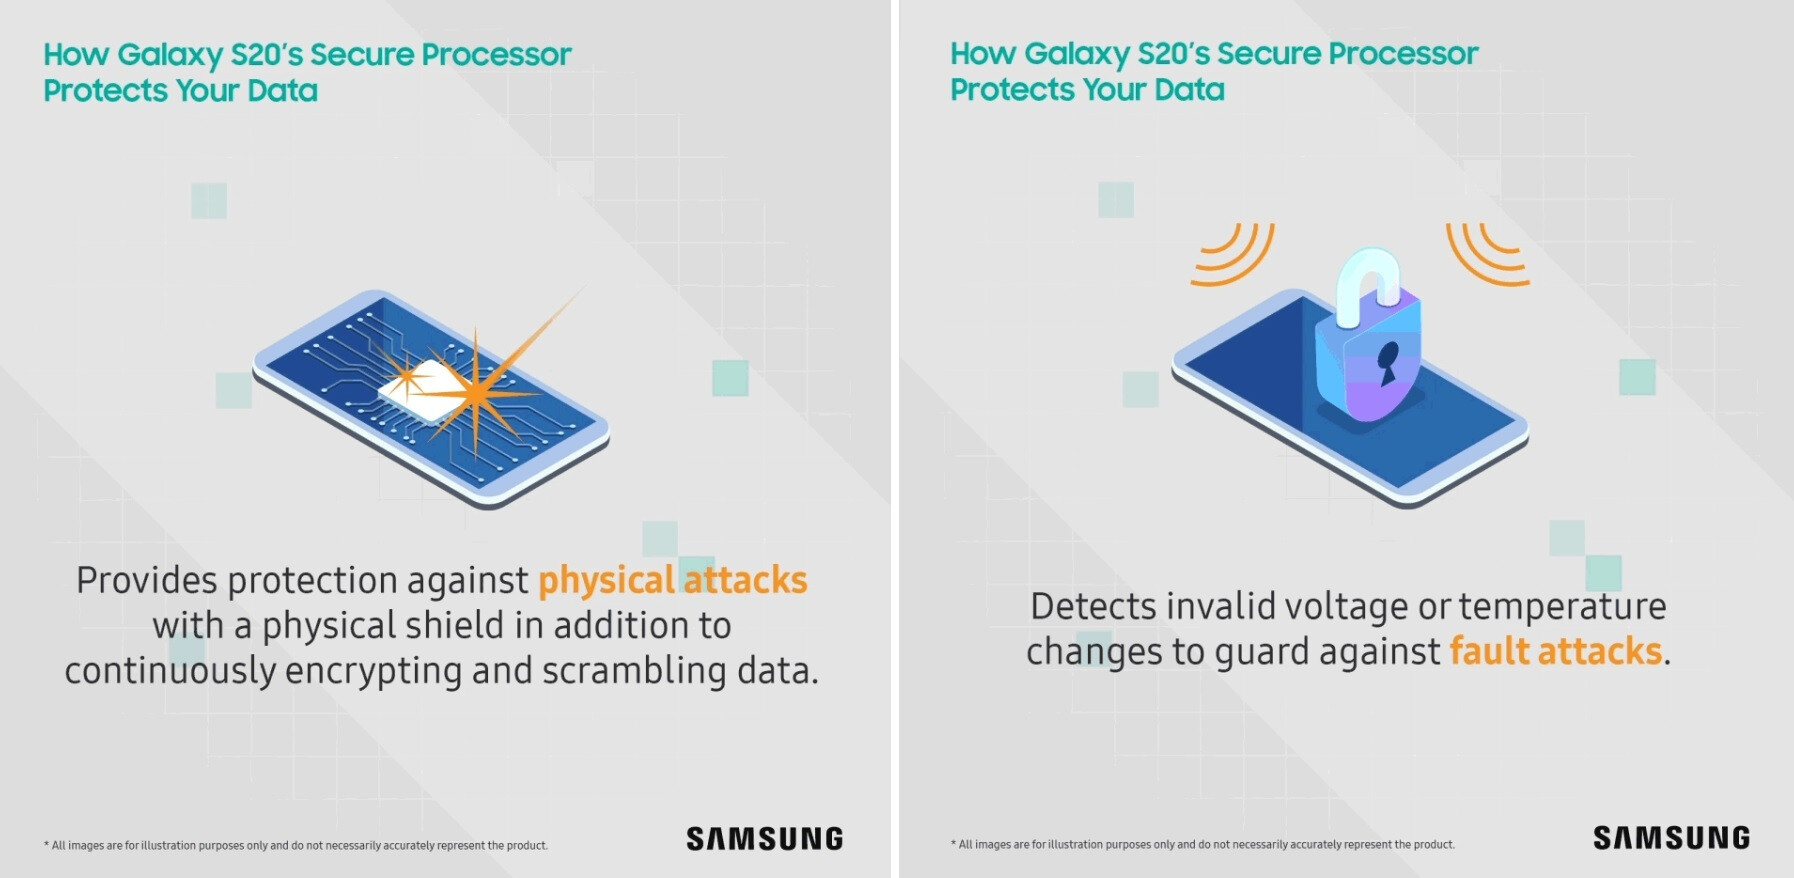 Samsung showcasing the S20's protection methods. - Samsung tells us just how secure the Galaxy S20 processor is